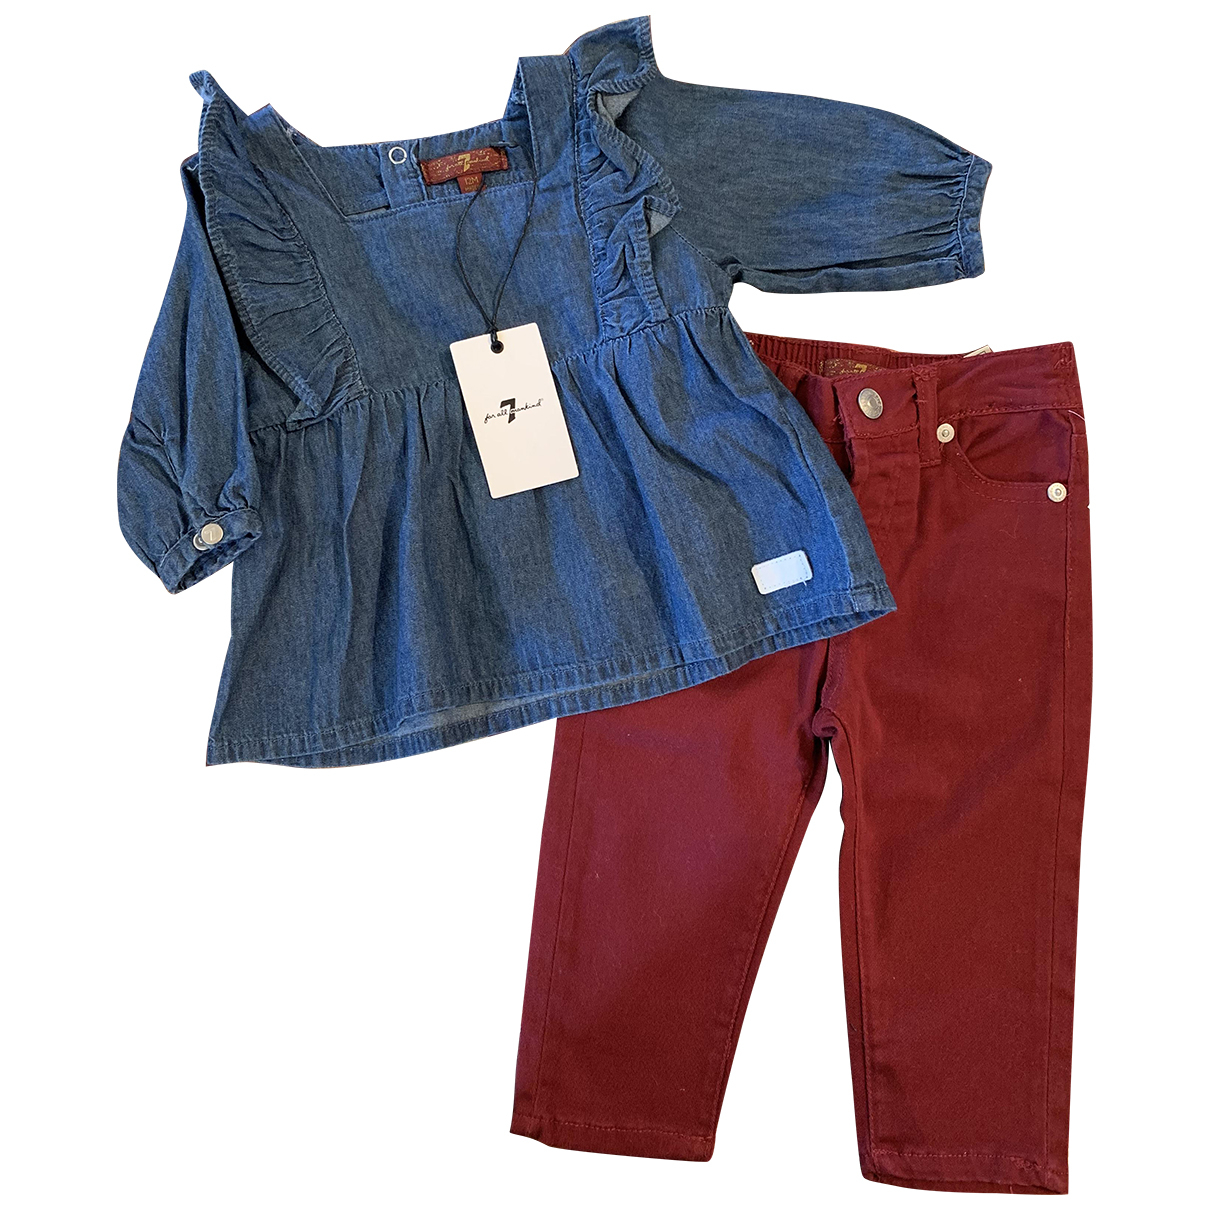 7 For All Mankind N Burgundy Cotton Outfits for Kids 12 months - up to 74cm FR